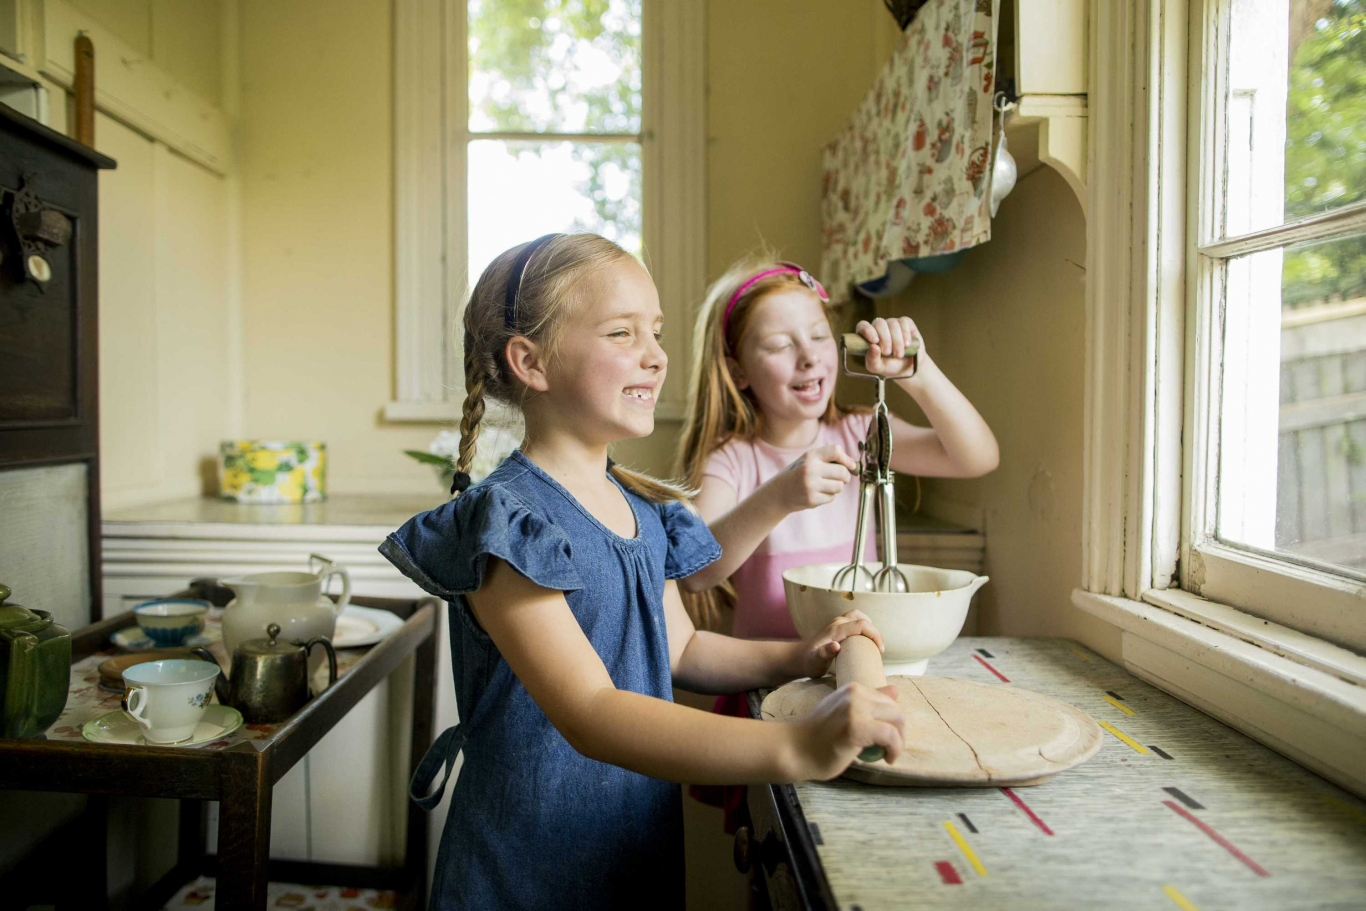 Two children in old-fashioned kitchen using implements in front of window.